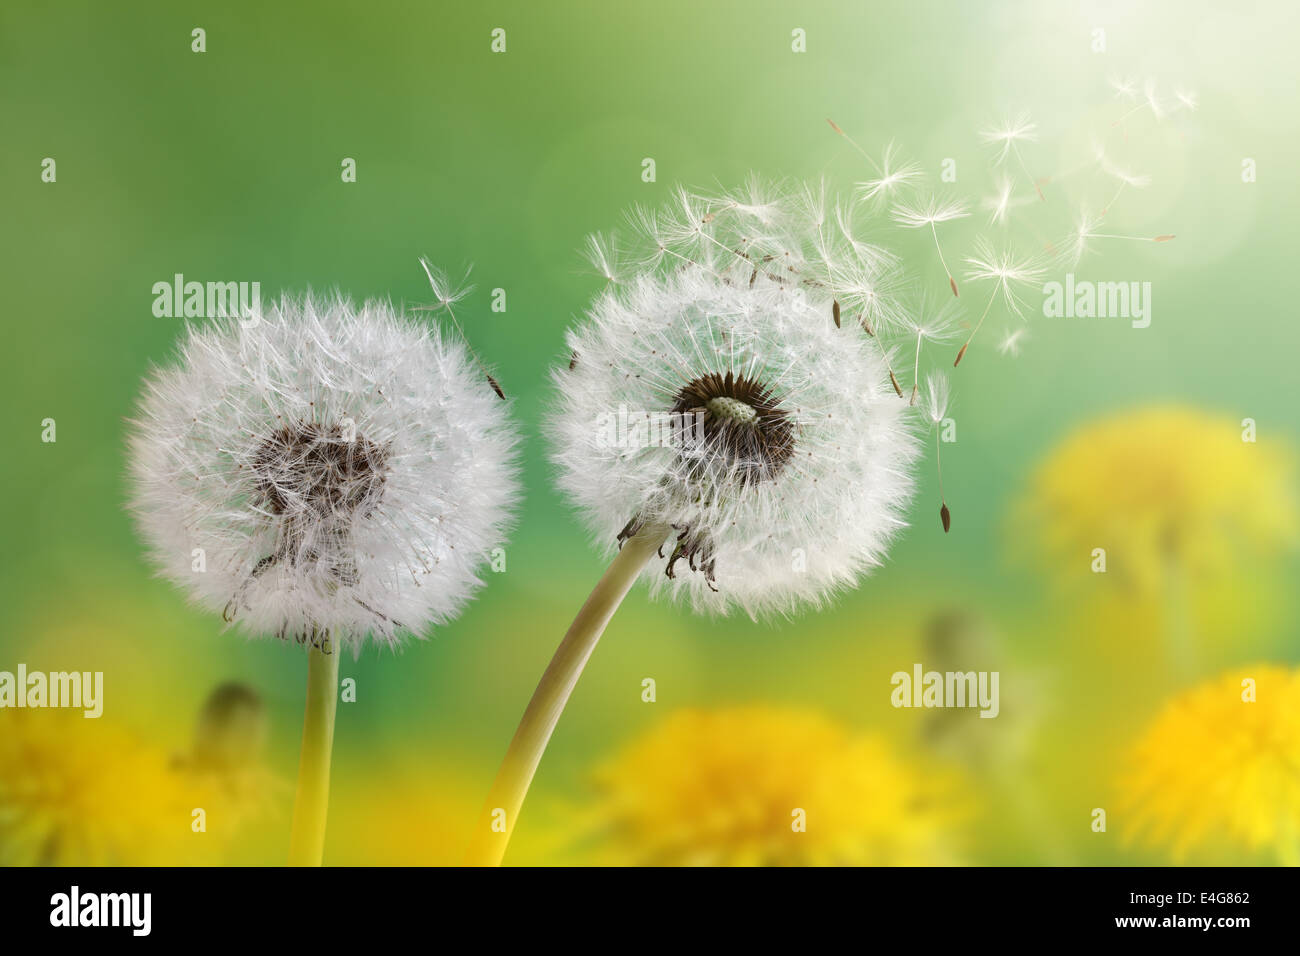 Dandelion clock in morning sun - Stock Image